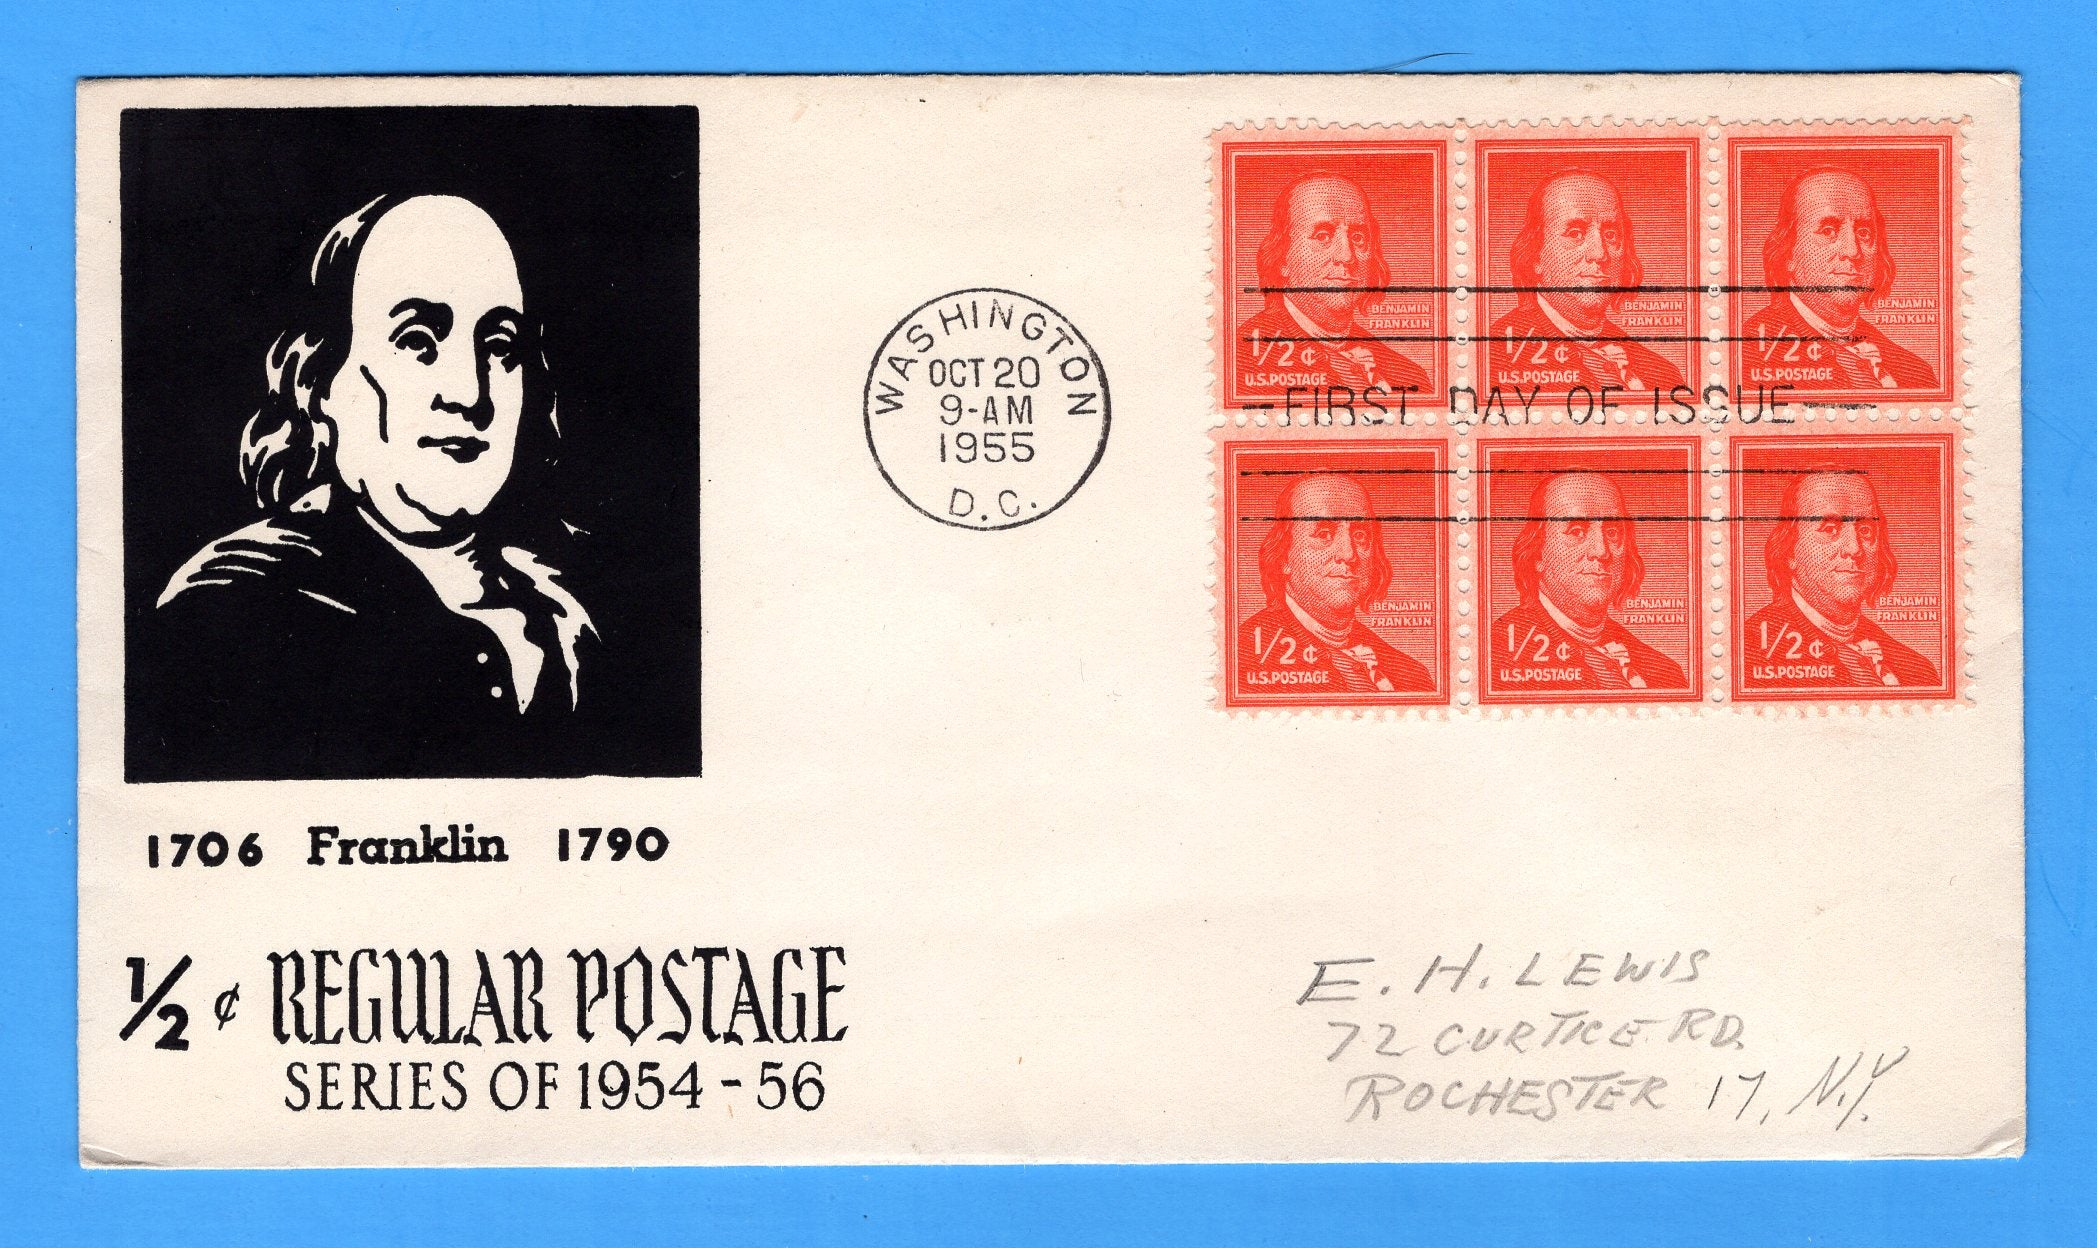 Scott 1030 1/2 Benjamin Franklin Silk Screen First Day Cover by Eric Lewis - Very Rare - Only Four Known Copies